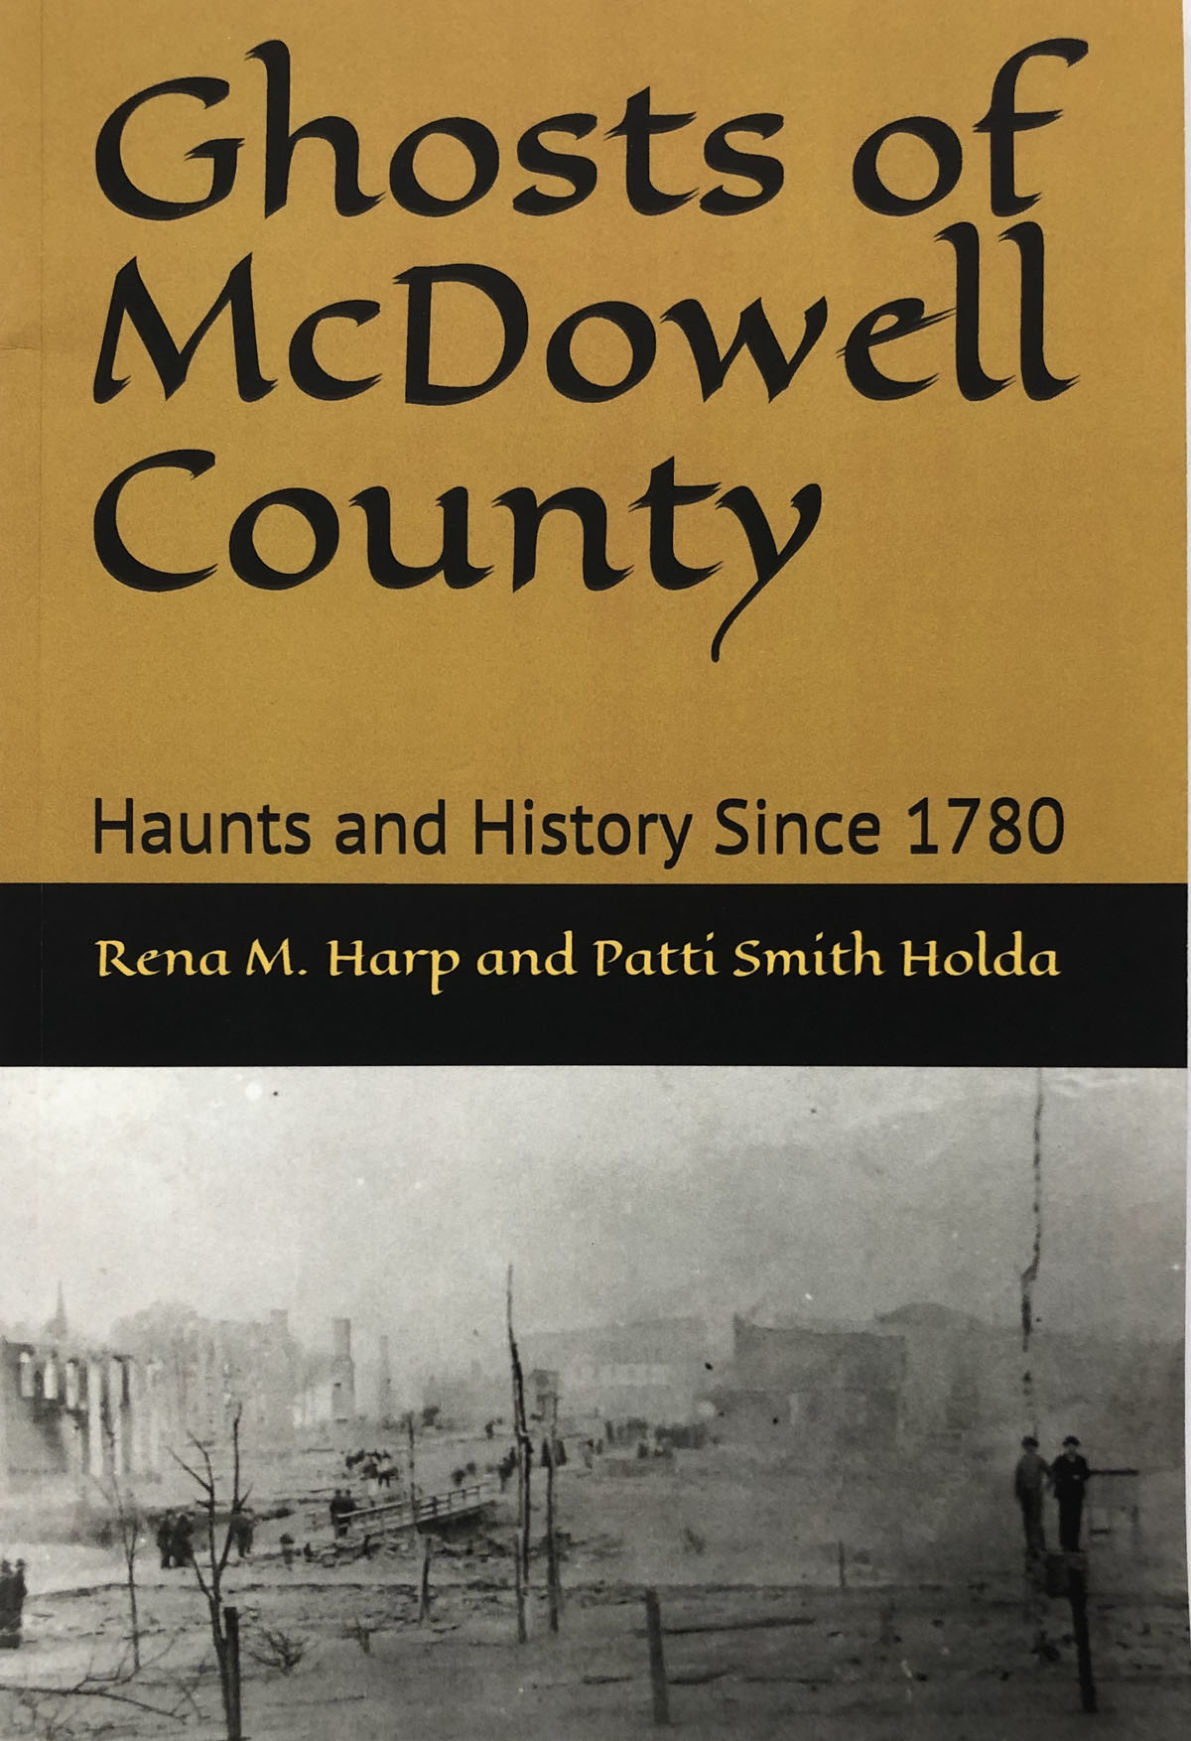 New book focuses on ghosts of McDowell County